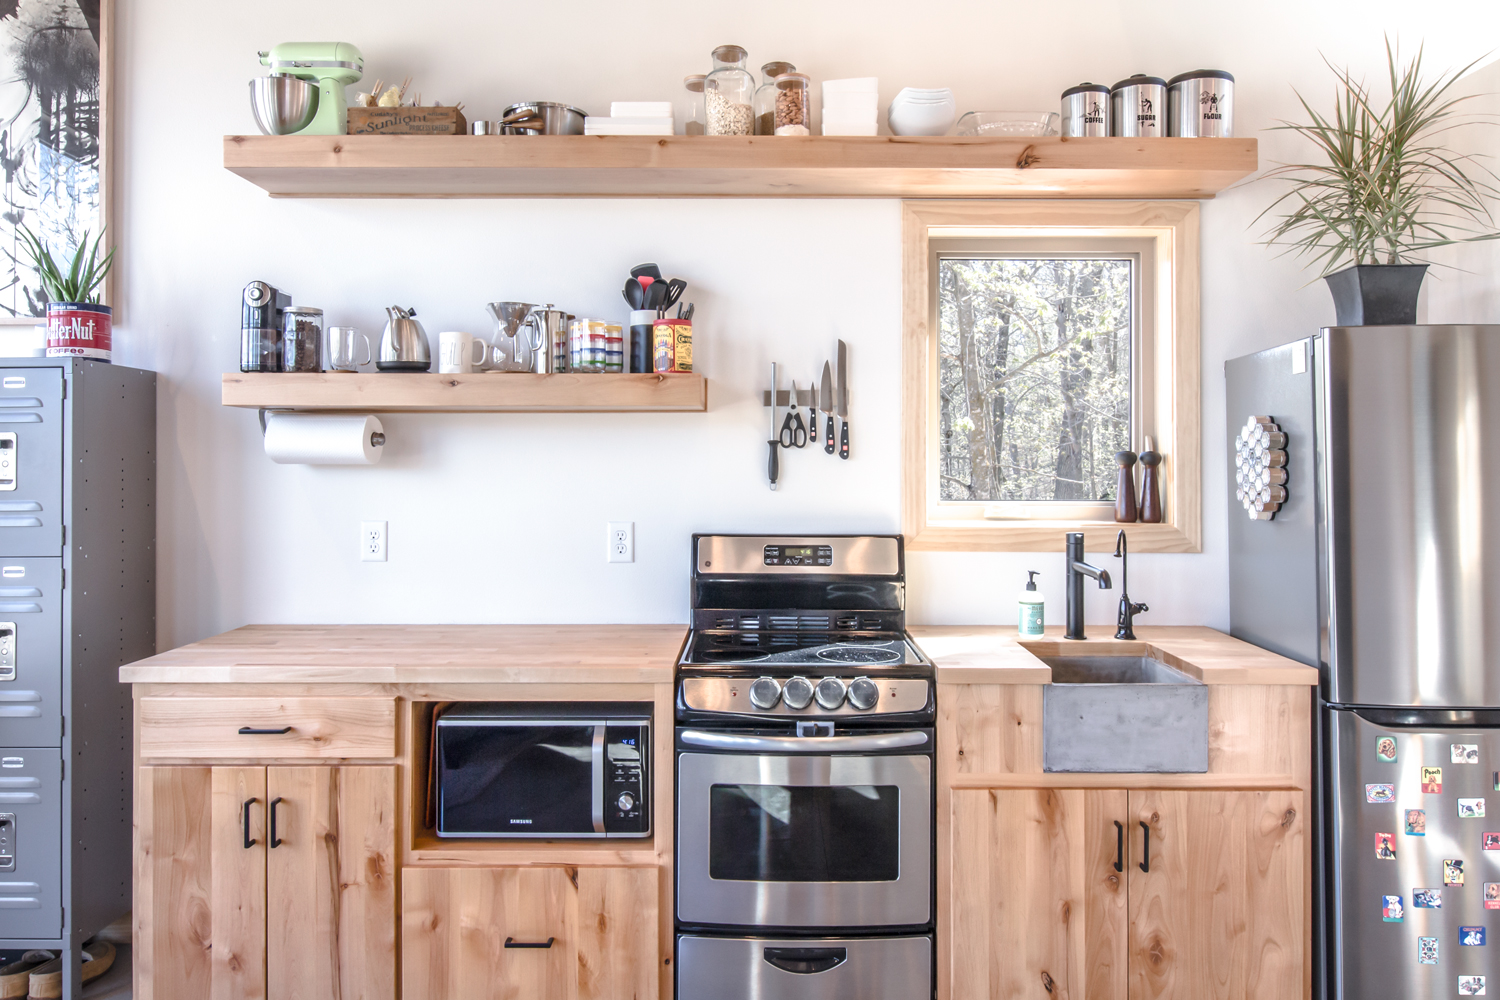 Tiny House Kitchen - Home is Best Place to Return